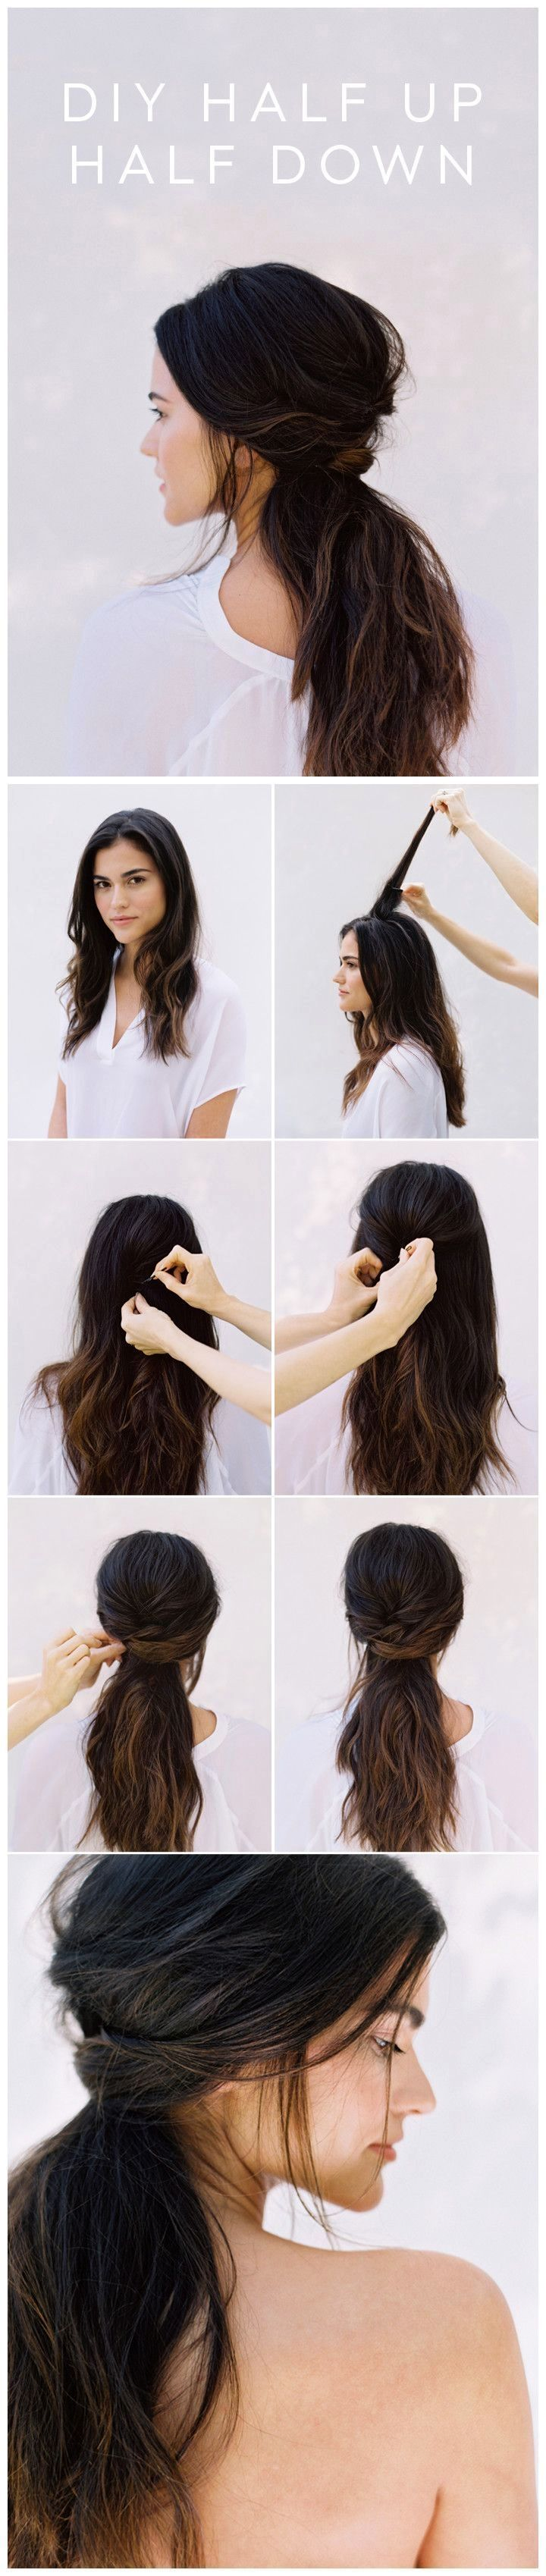 400 best Wedding Hairstyles images by Sarah Wilson on Pinterest